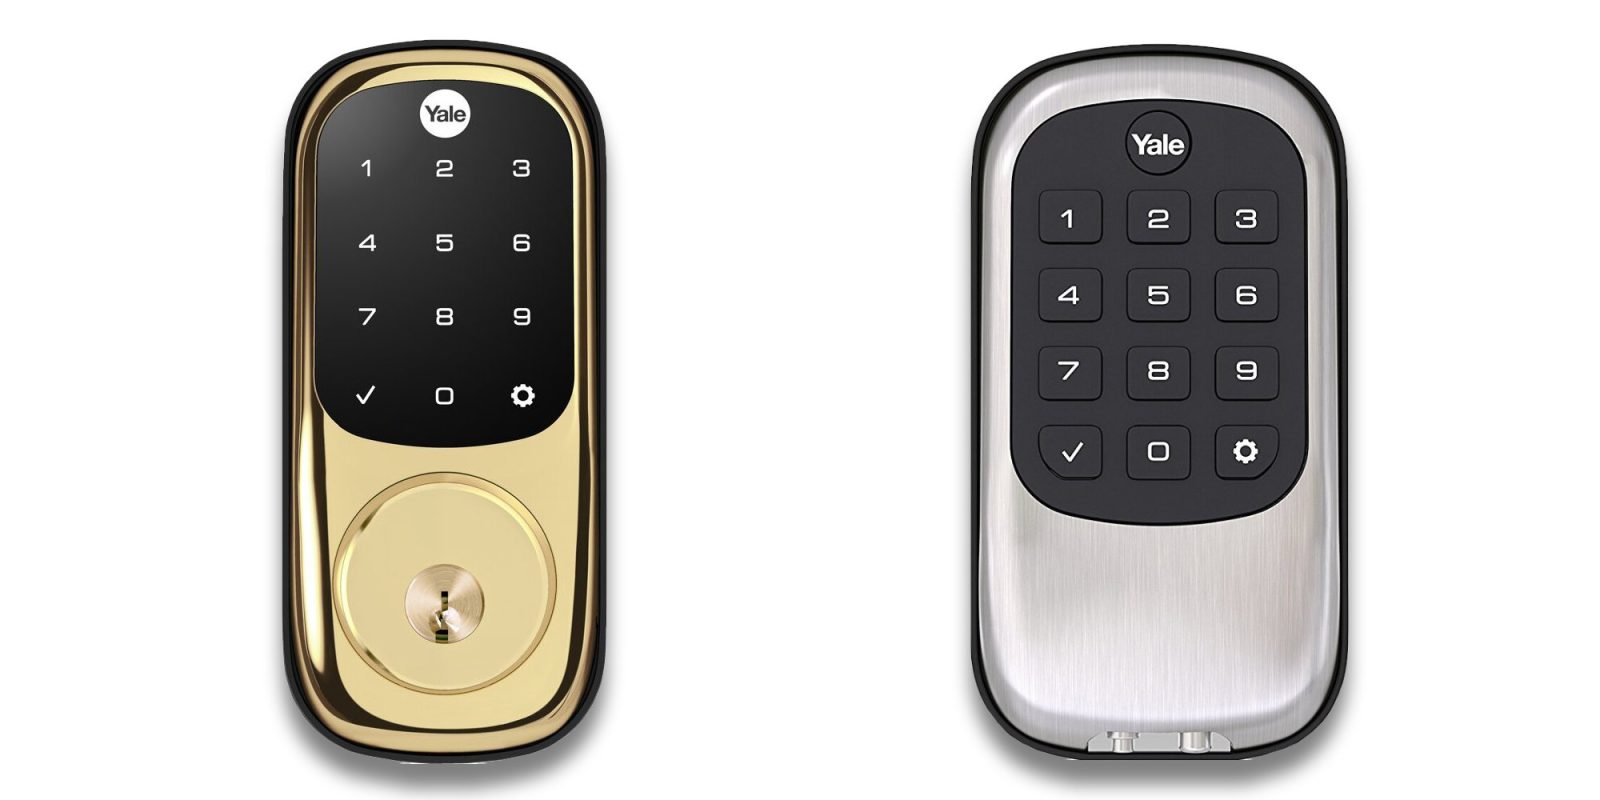 Equip the door with a Yale Z-Wave Smart Lock for as low as $78 (Save 20%)